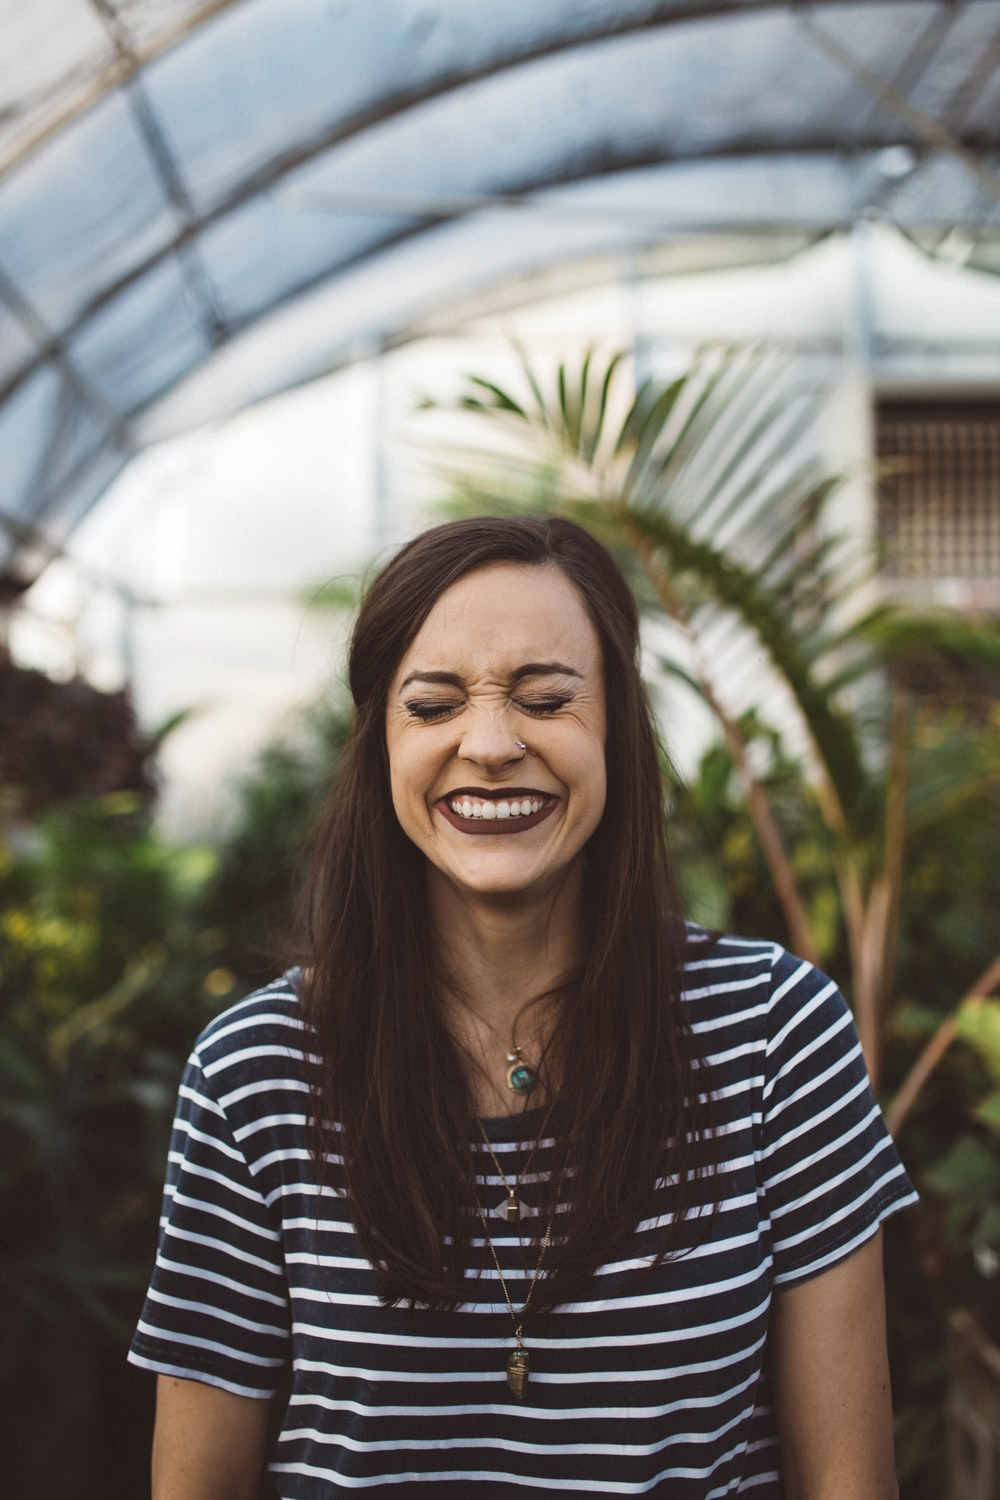 woman smiling while standing in garden